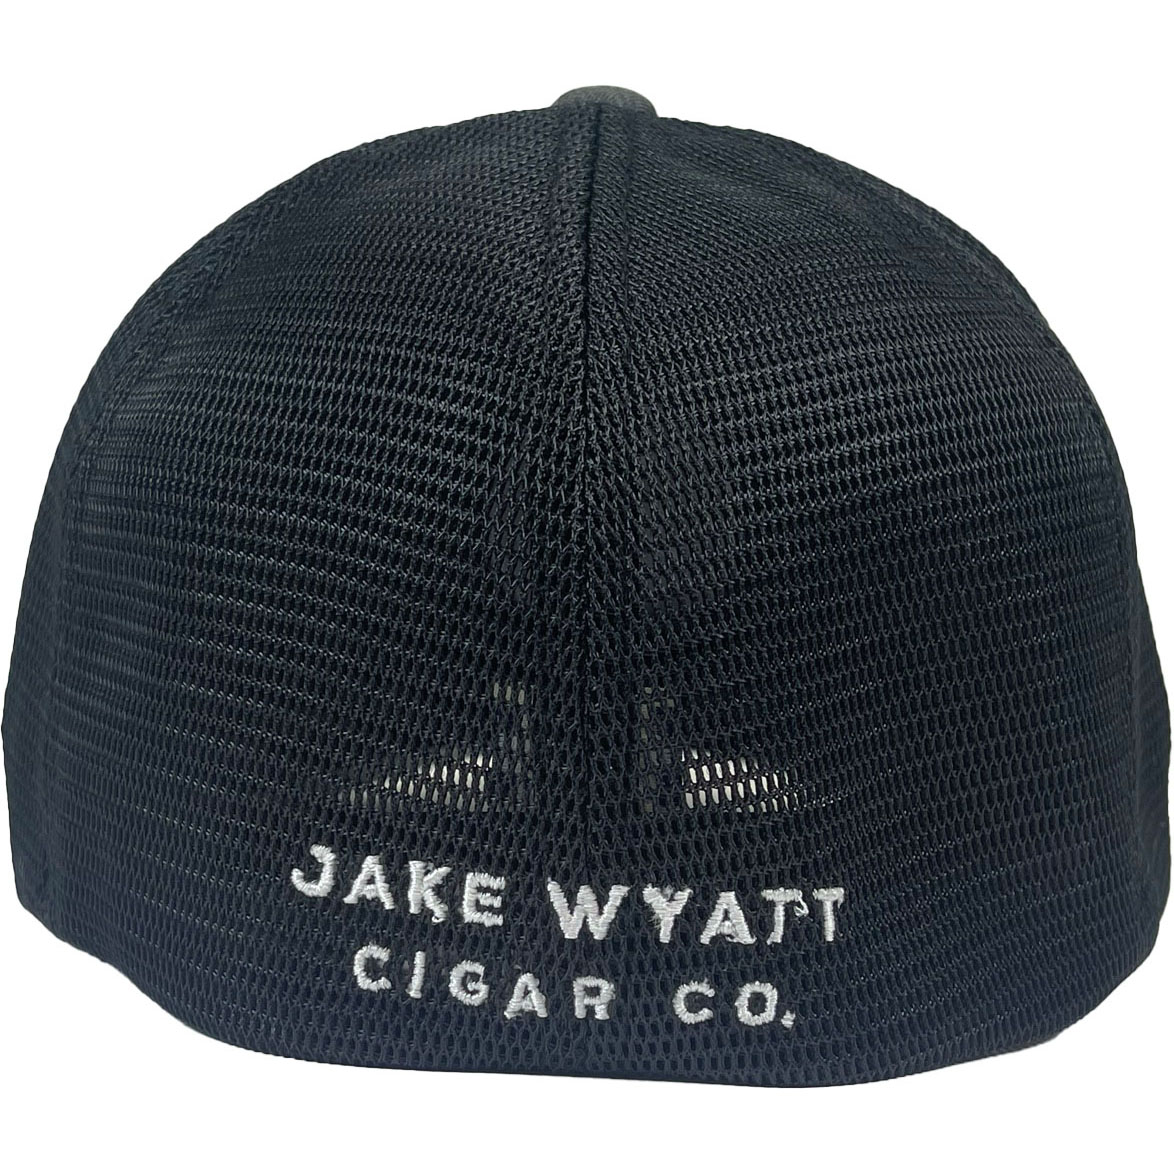 Jake Wyatt Cigar Co. - Black and Grey Round Logo Fitted Hat